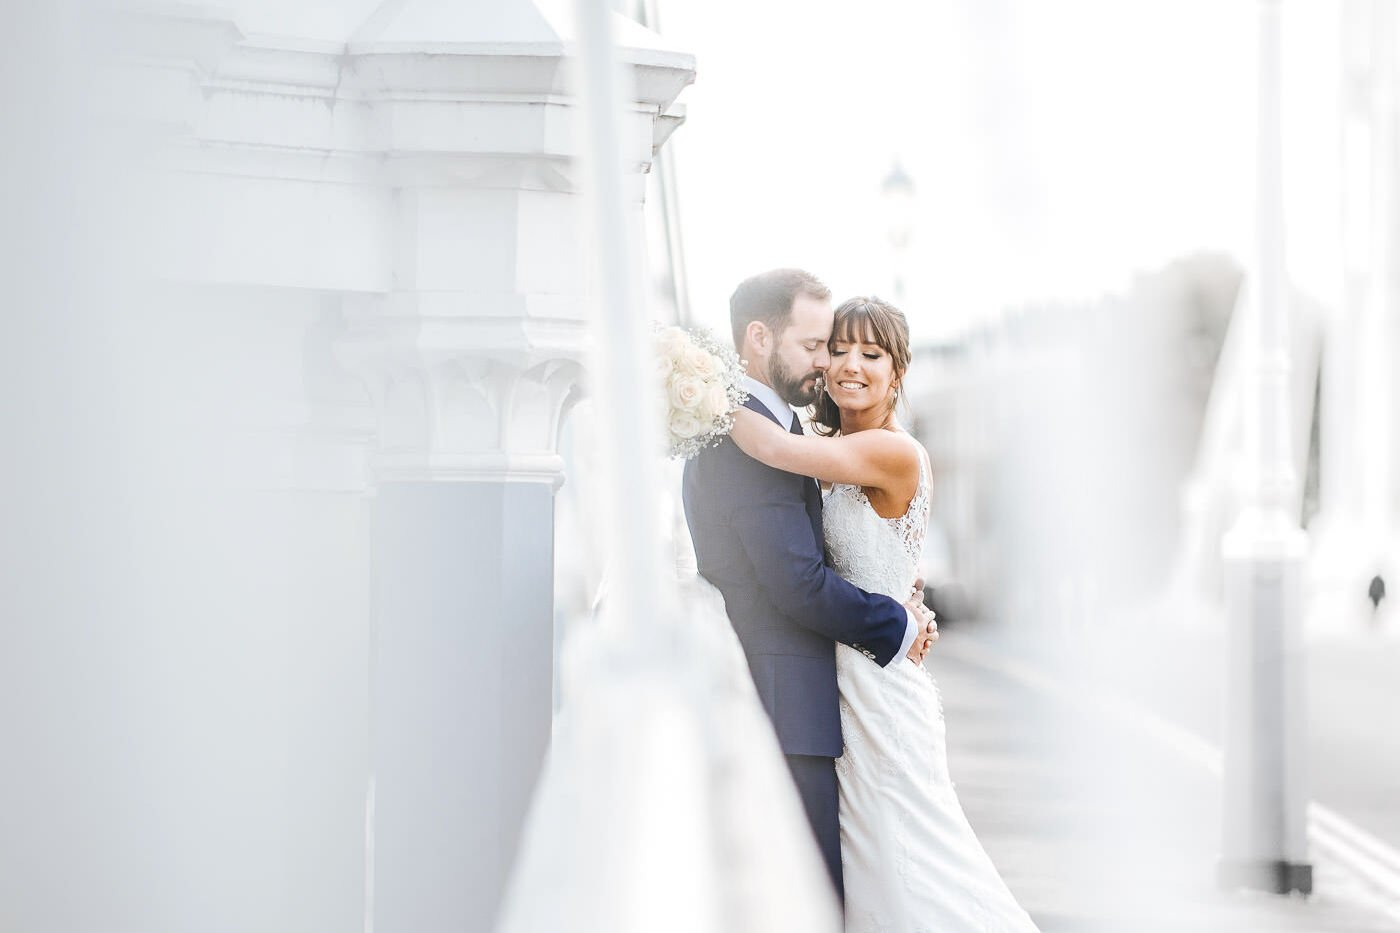 Celsea old town hall wedding photos bride and groom shoot on albert bridge